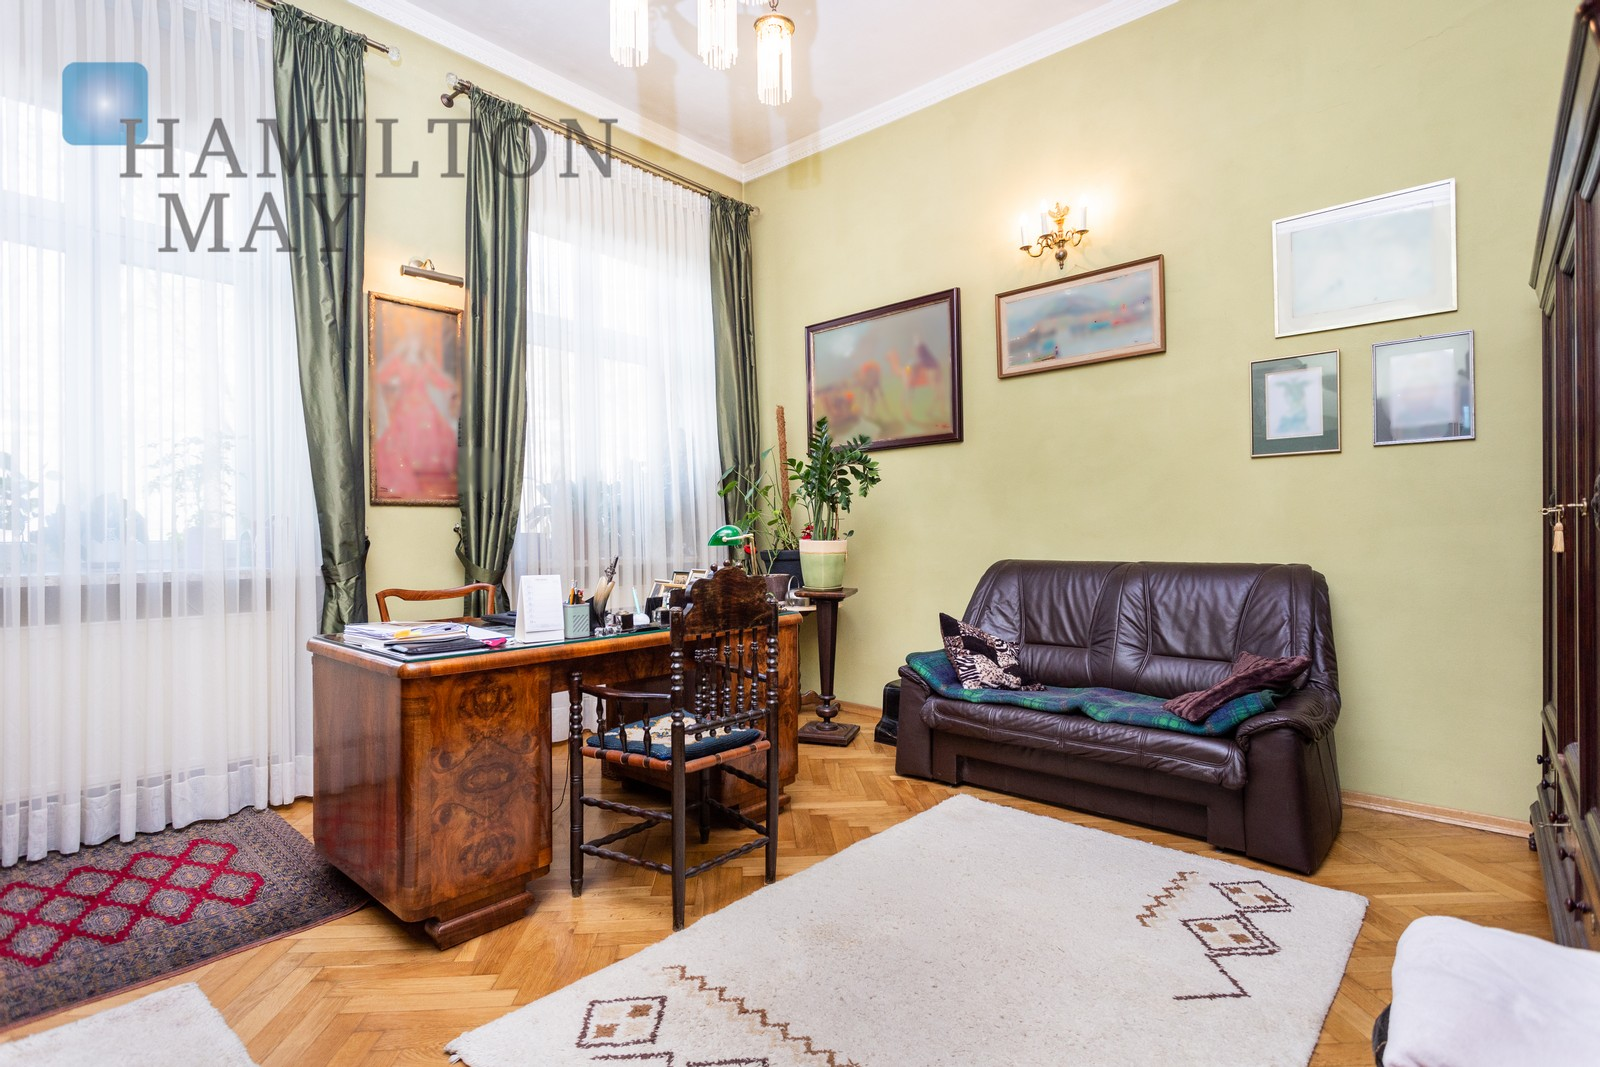 For sale, a stylish and spacious 3 bedroom apartment located in a fully renovated building - Św. Gertrudy Krakow for sale